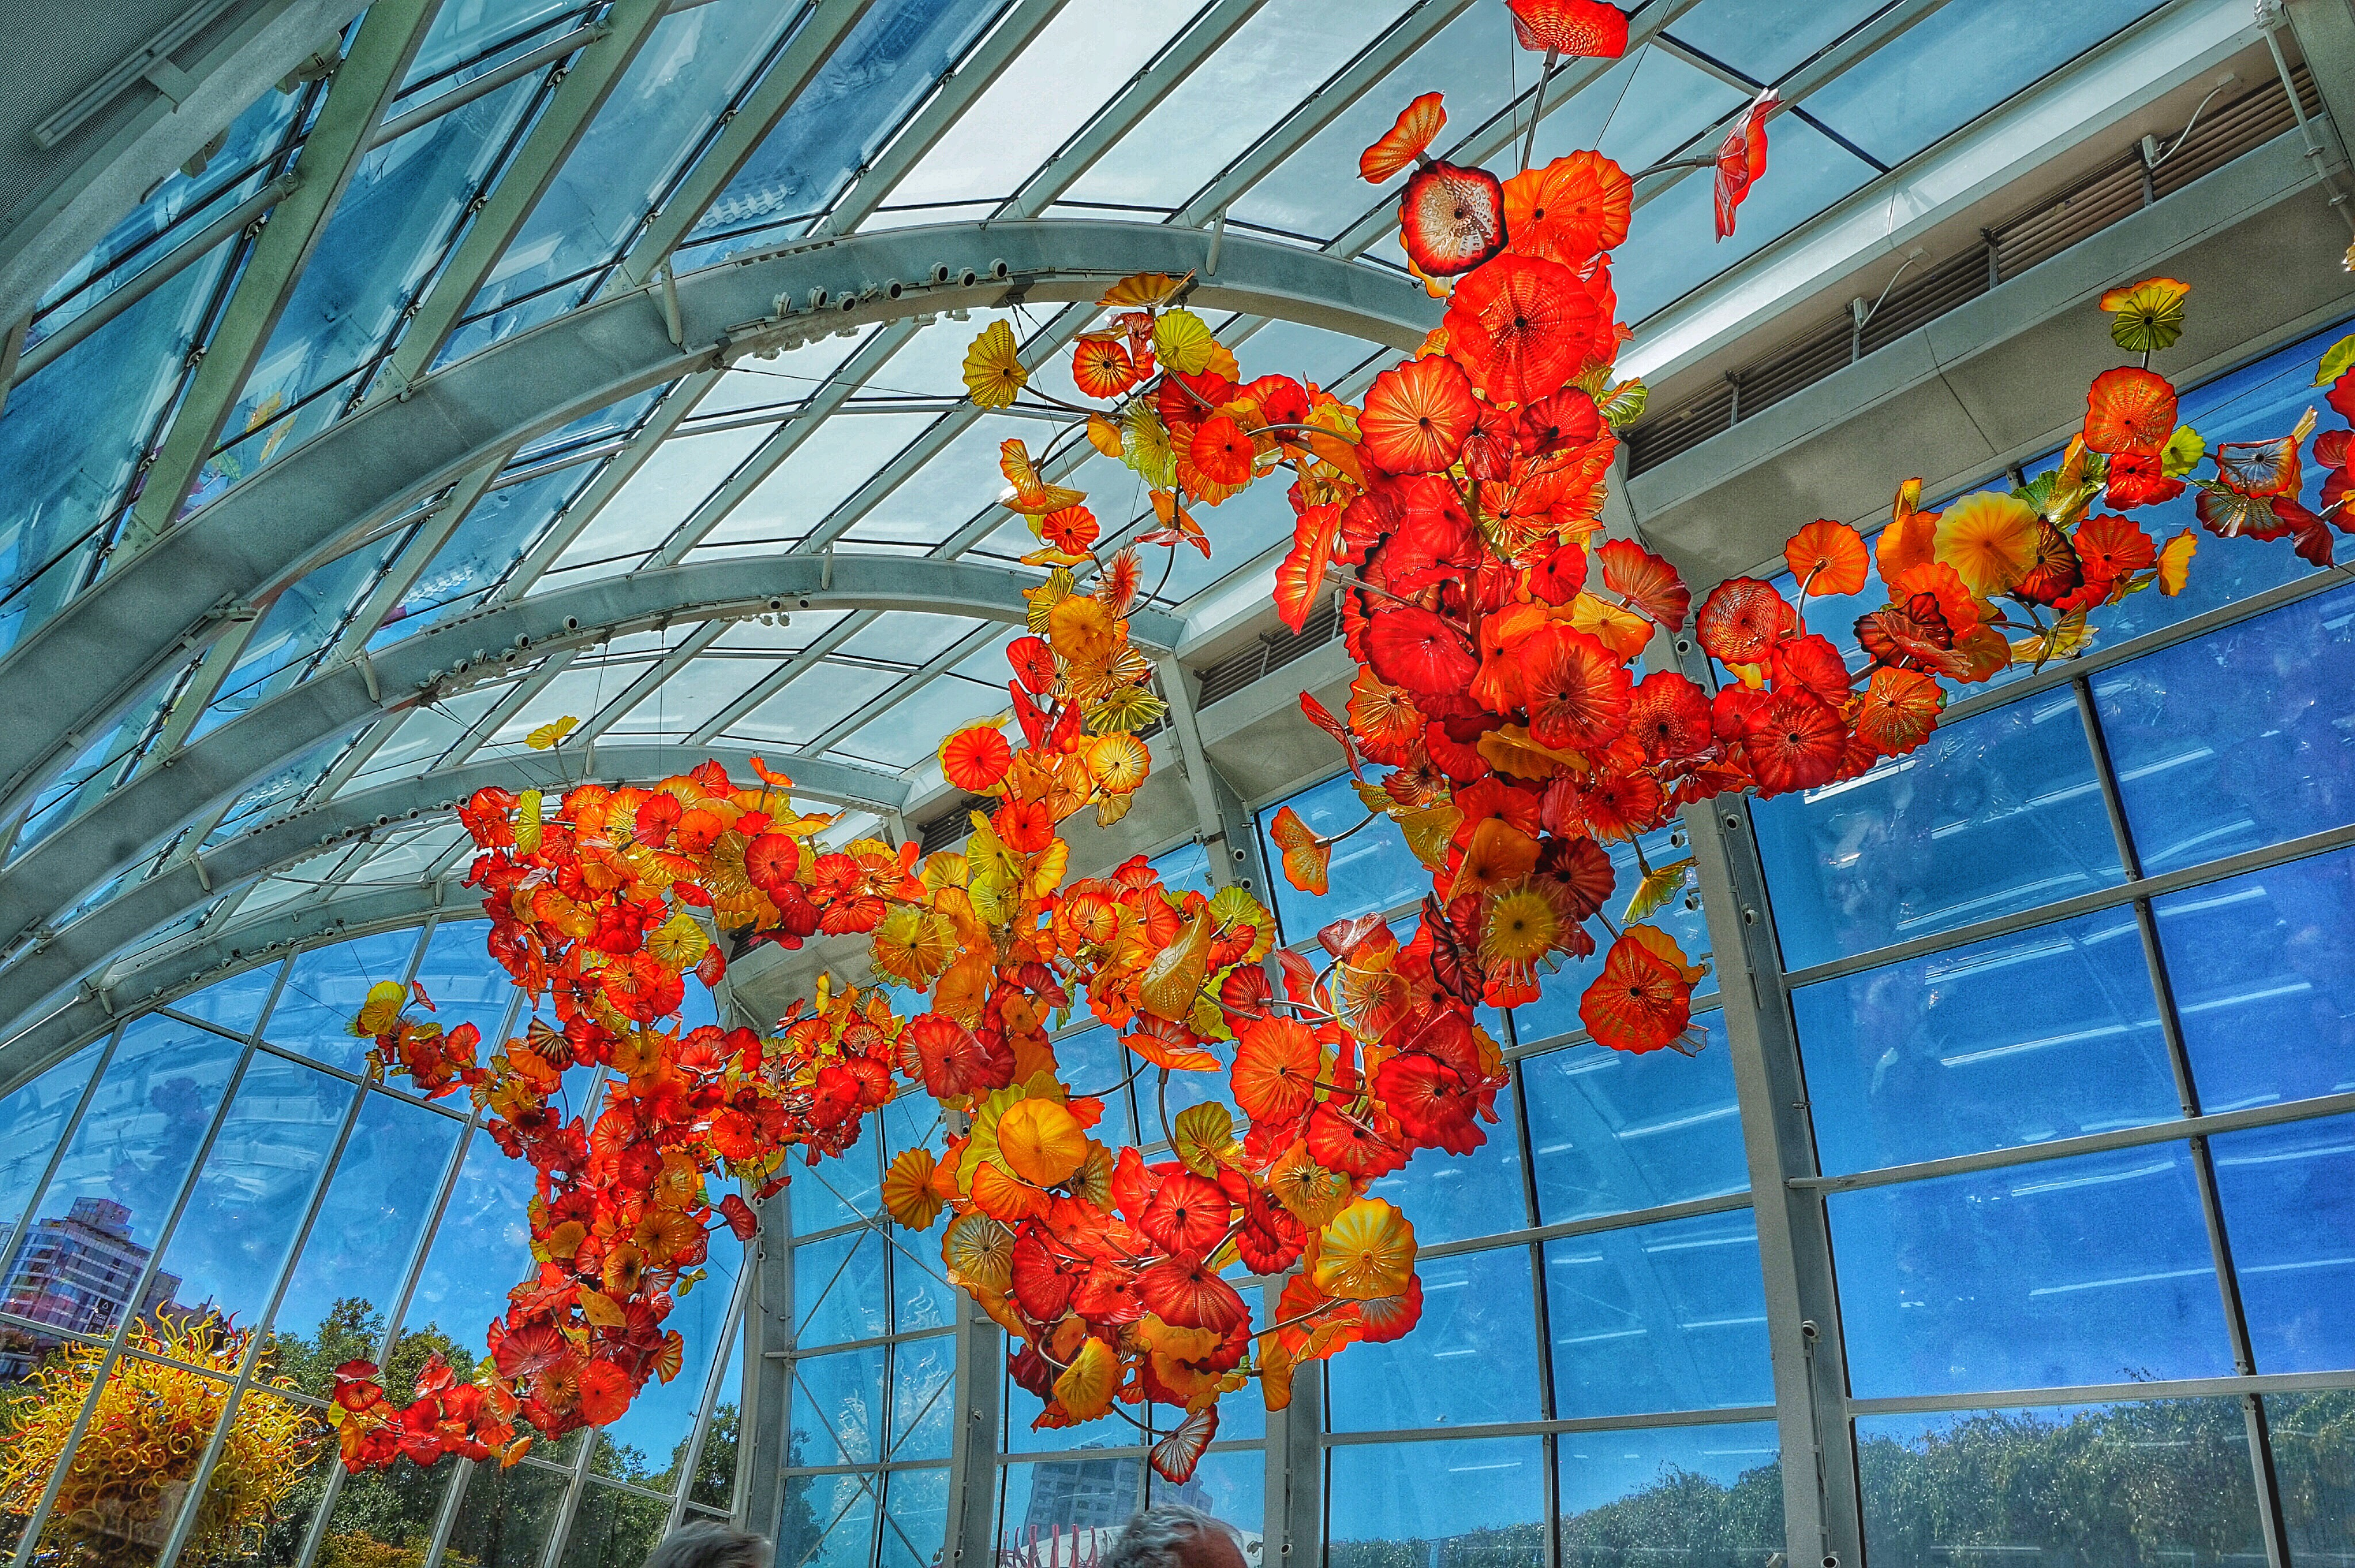 Seattle center chihuly garden glass exhibit trippintwins for Chihuly garden and glass hours